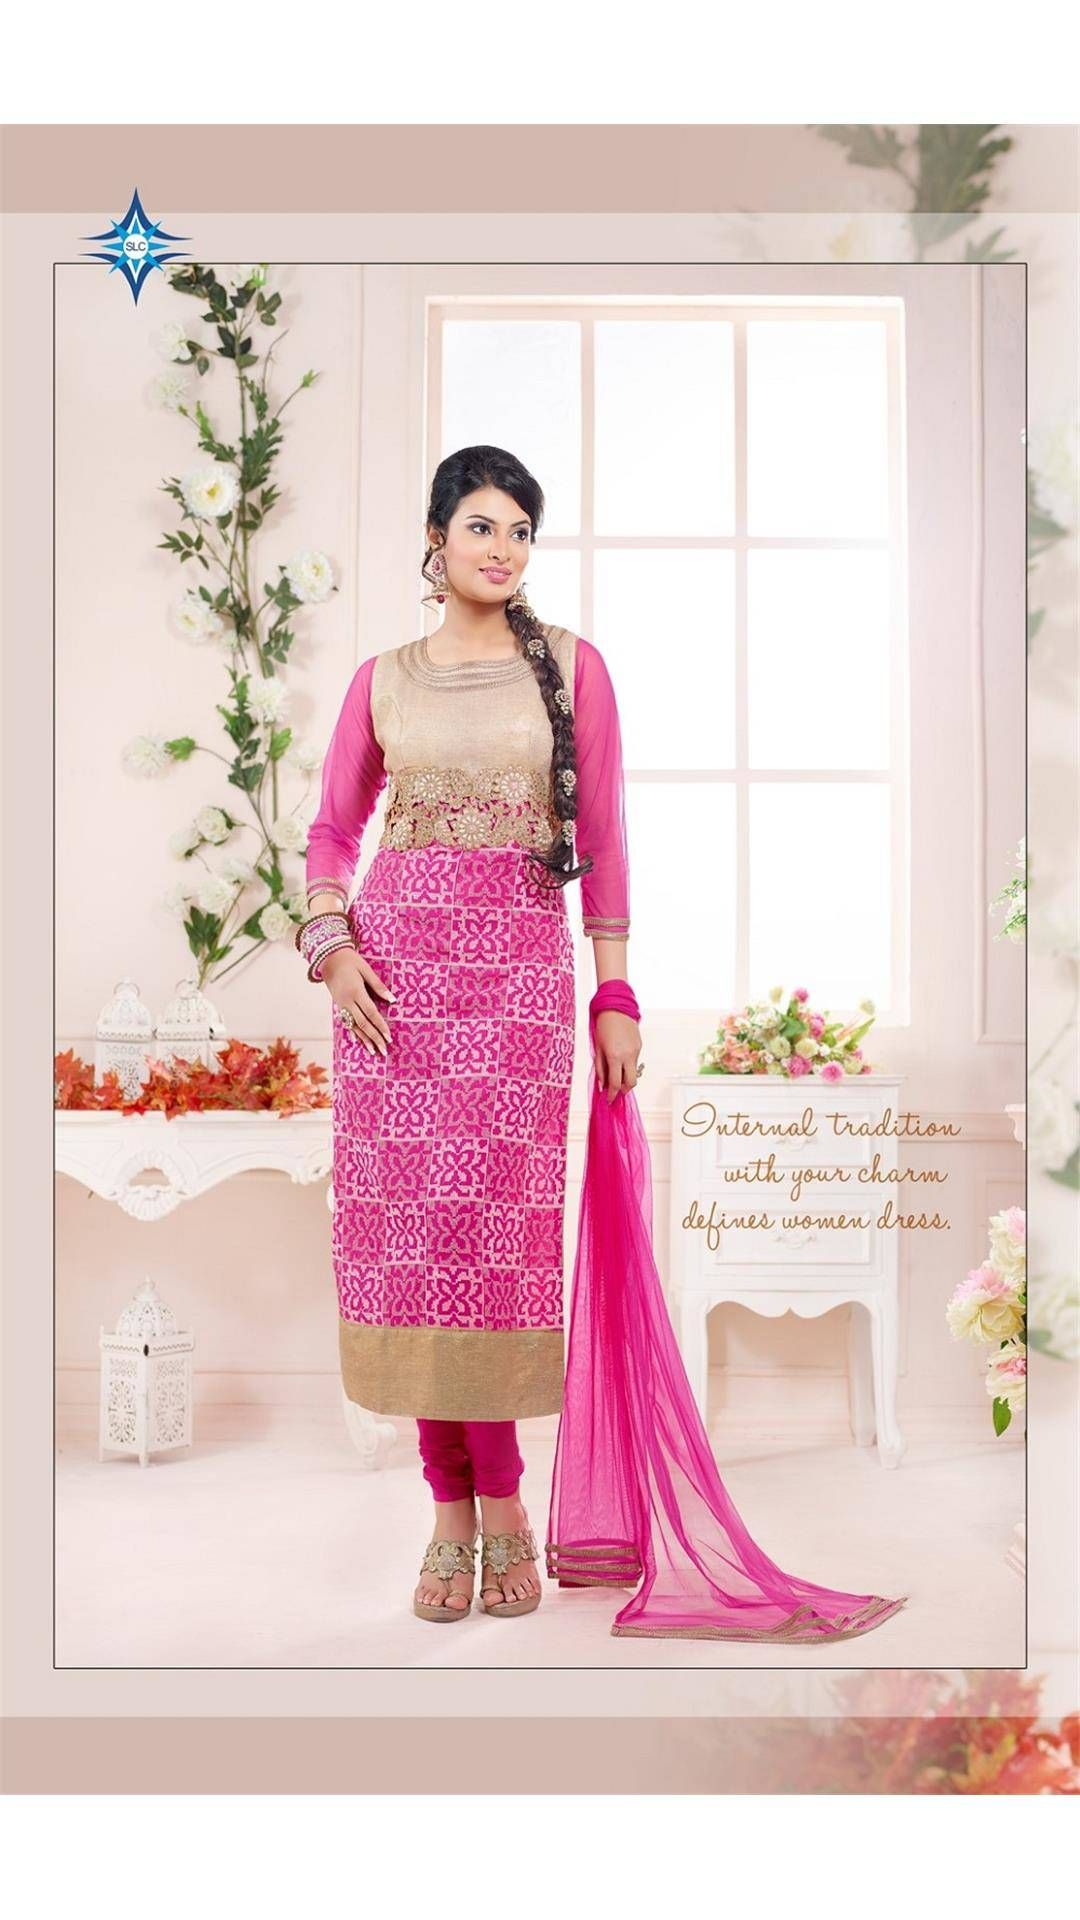 Buy Saiveera New Arrival Designer Pink Georgette Semistitched Straight Salwar Suit Online at Low Prices in India - Paytm.com Saiveera Fashion is a #Manufacture Wholesaler,Trader, Popular Dealar and Retailar Of wide Range Salwarsuit,Dress Material,Saree,Lehnga Choli,Bollywood Collection Replica,Saree, Lehnaga CHoli and Also Multiple Purpose of Variety Such as Like #Churidar,Patiala,#Anarkali,Cotton,Georgette,Net,Cotton,Pure Cotton Dress Material.For Any Other Query Call/Whatsapp…